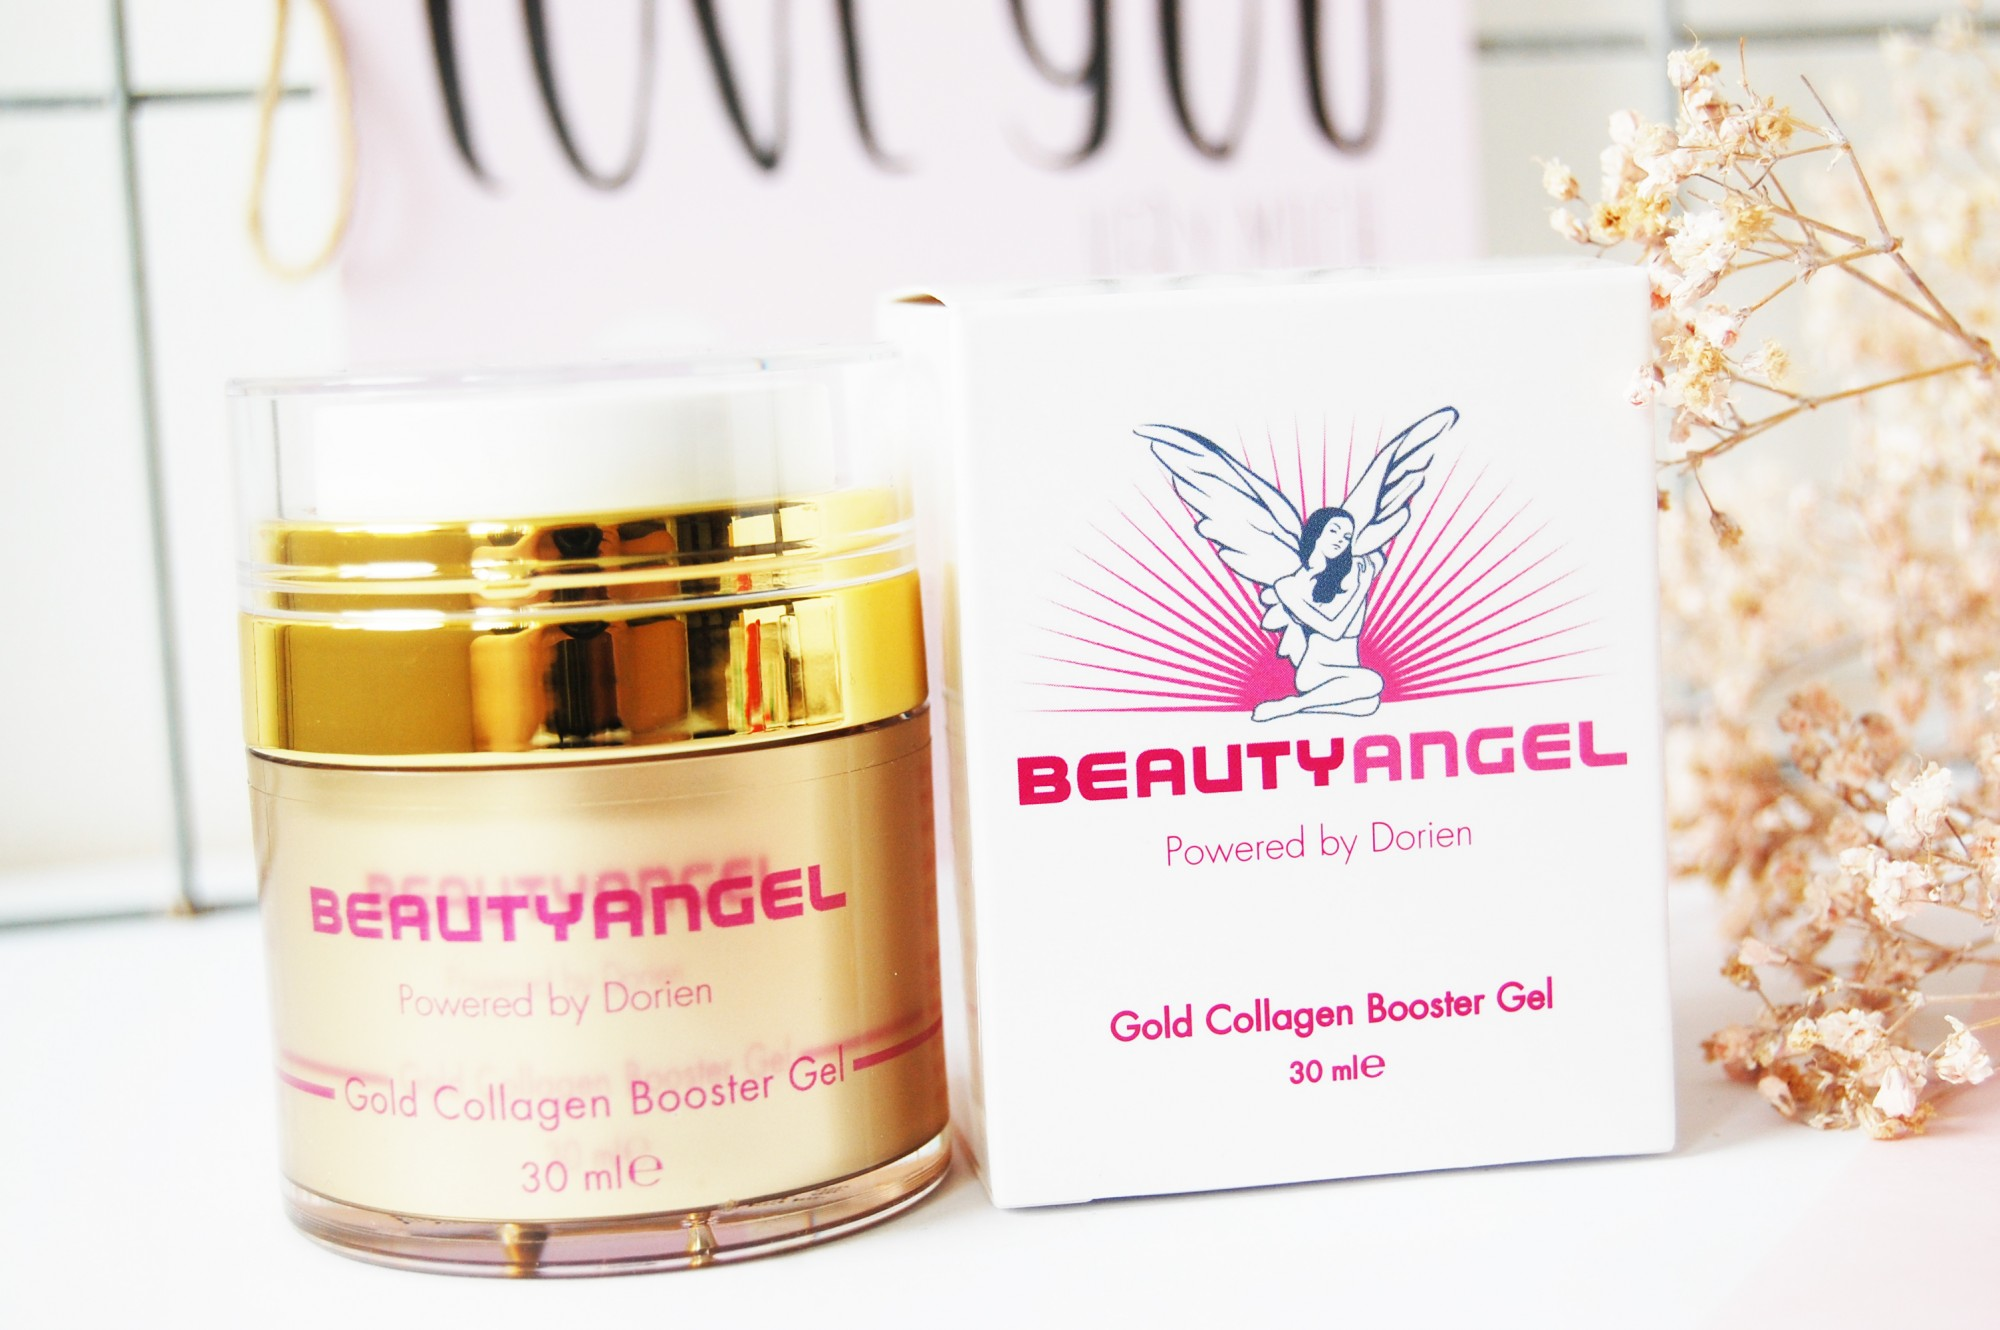 Beauty Angel Gold Collagen Booster